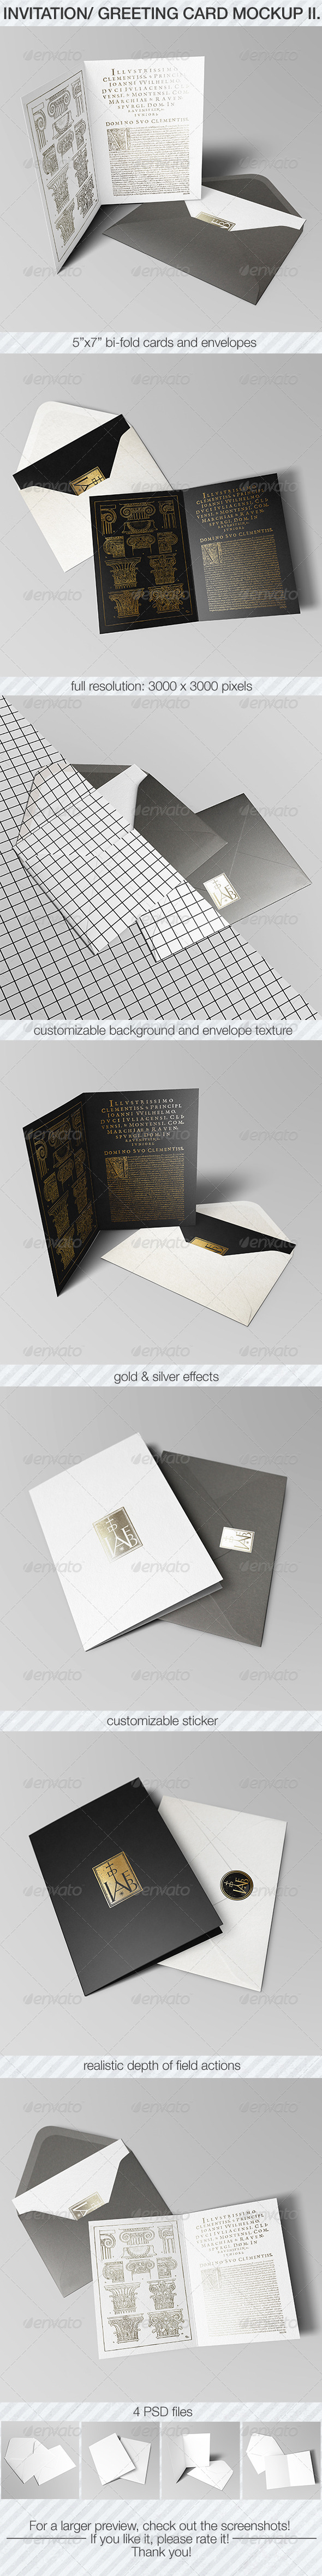 Invitation & Greeting Card Mockup Pack II. - Miscellaneous Print